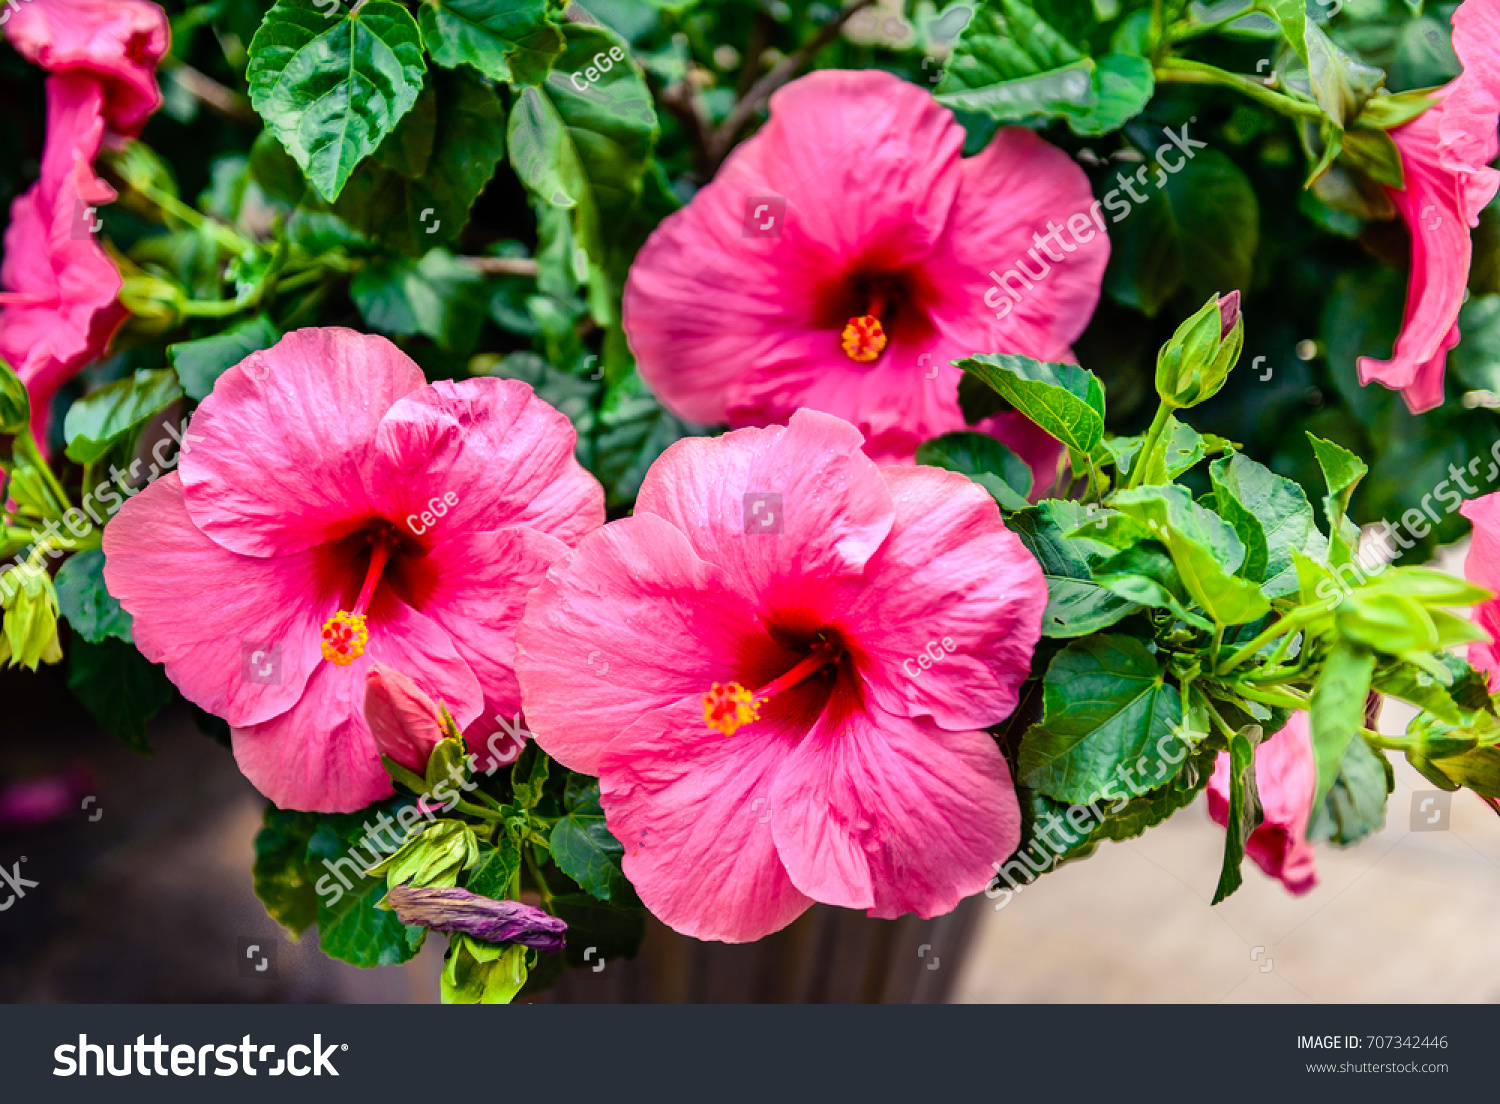 Hibiscus flower commonly called gumamela asian stock photo edit now hibiscus flower commonly called gumamela in asian countries is famous for its wide petals in various izmirmasajfo